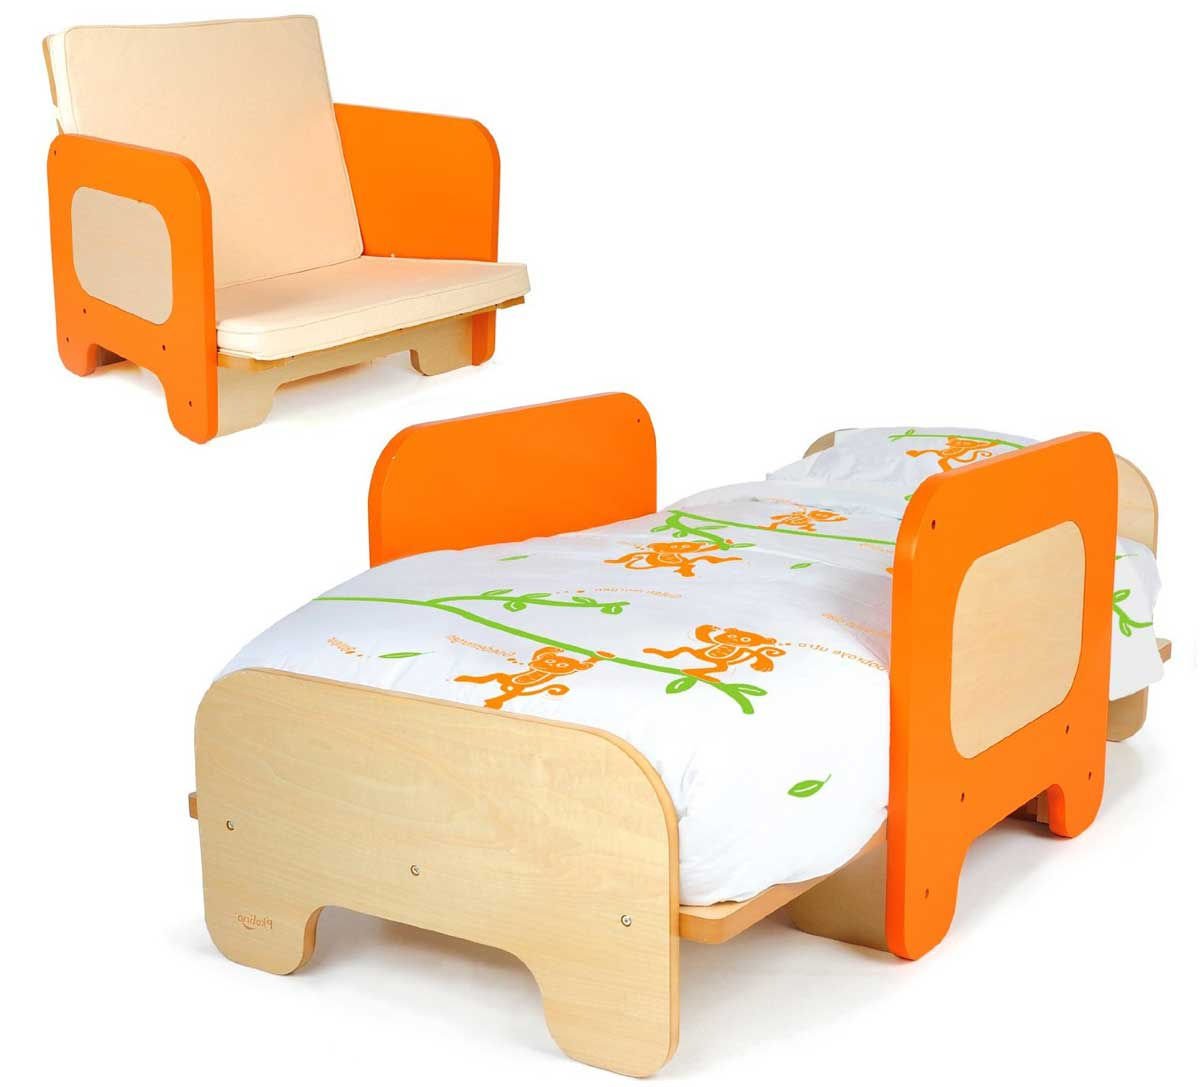 Toddler Couch Bed And Chairs — Oz Visuals Design : A Different With Widely Used Toddler Sofa Chairs (View 11 of 20)